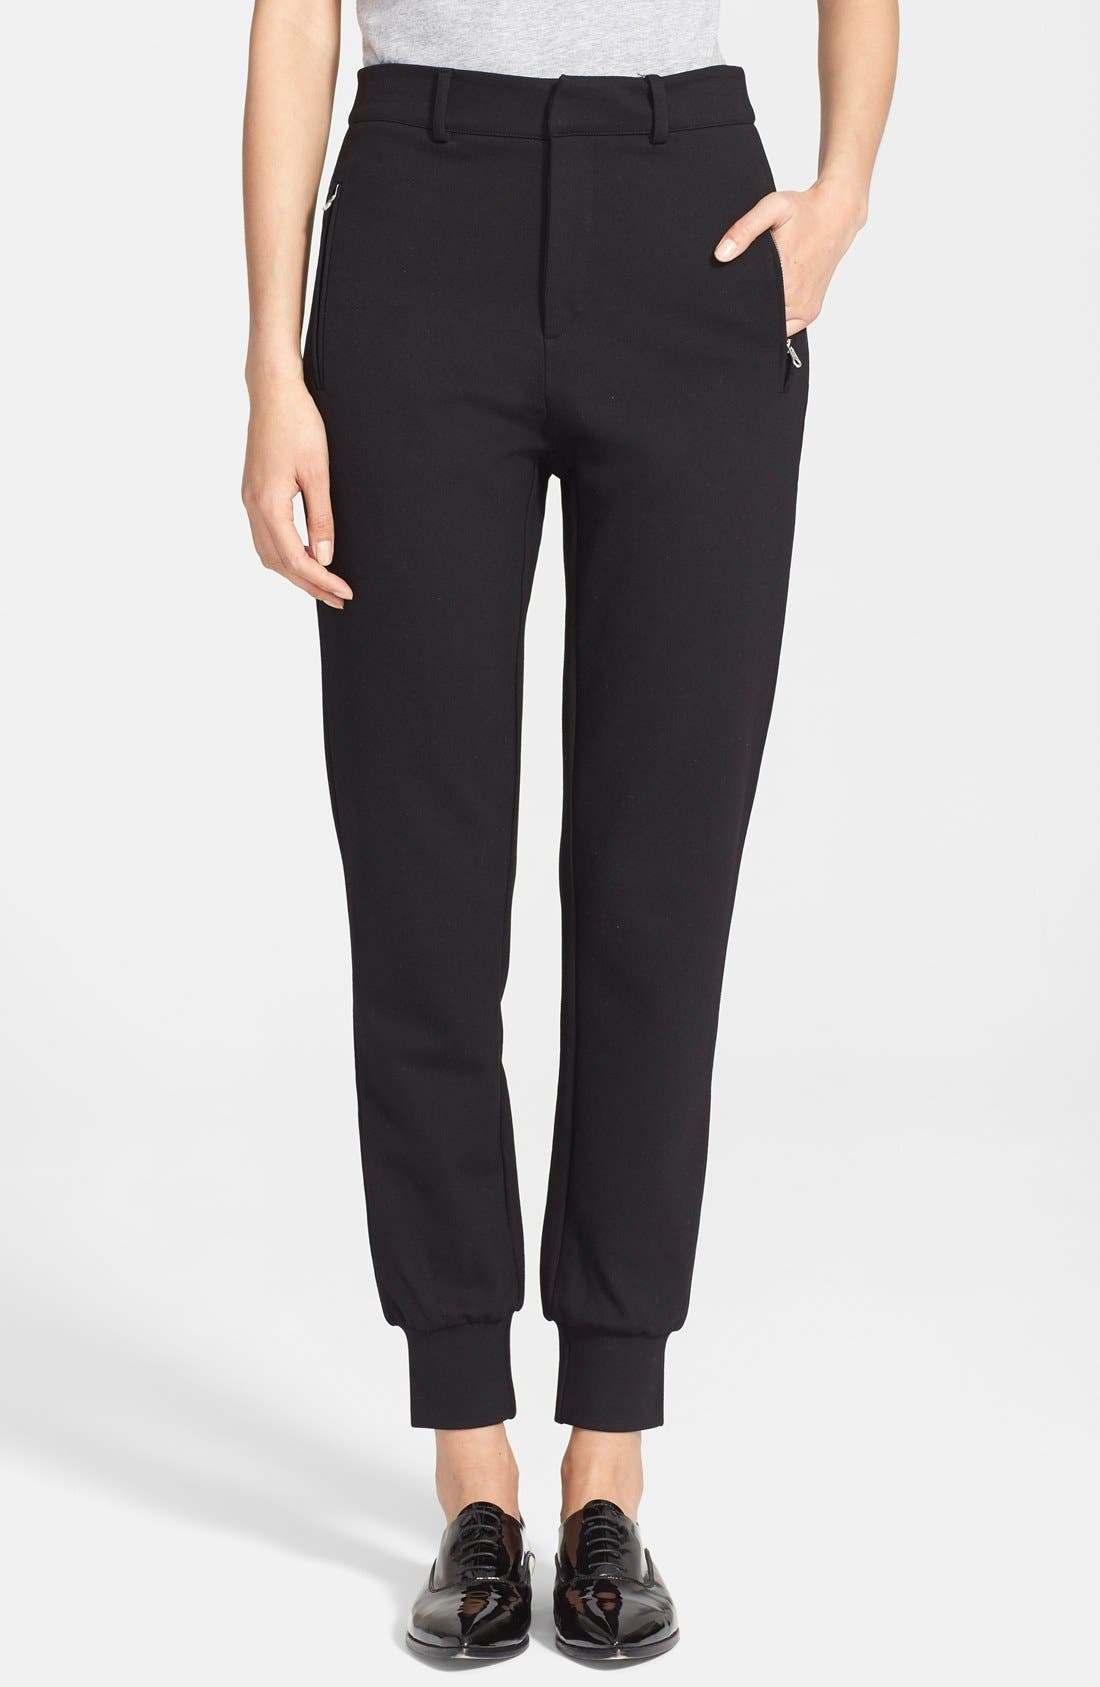 MCQ ALEXANDER MCQUEEN McQ by Alexander McQueen Tailored Sweatpants, Main, color, 001